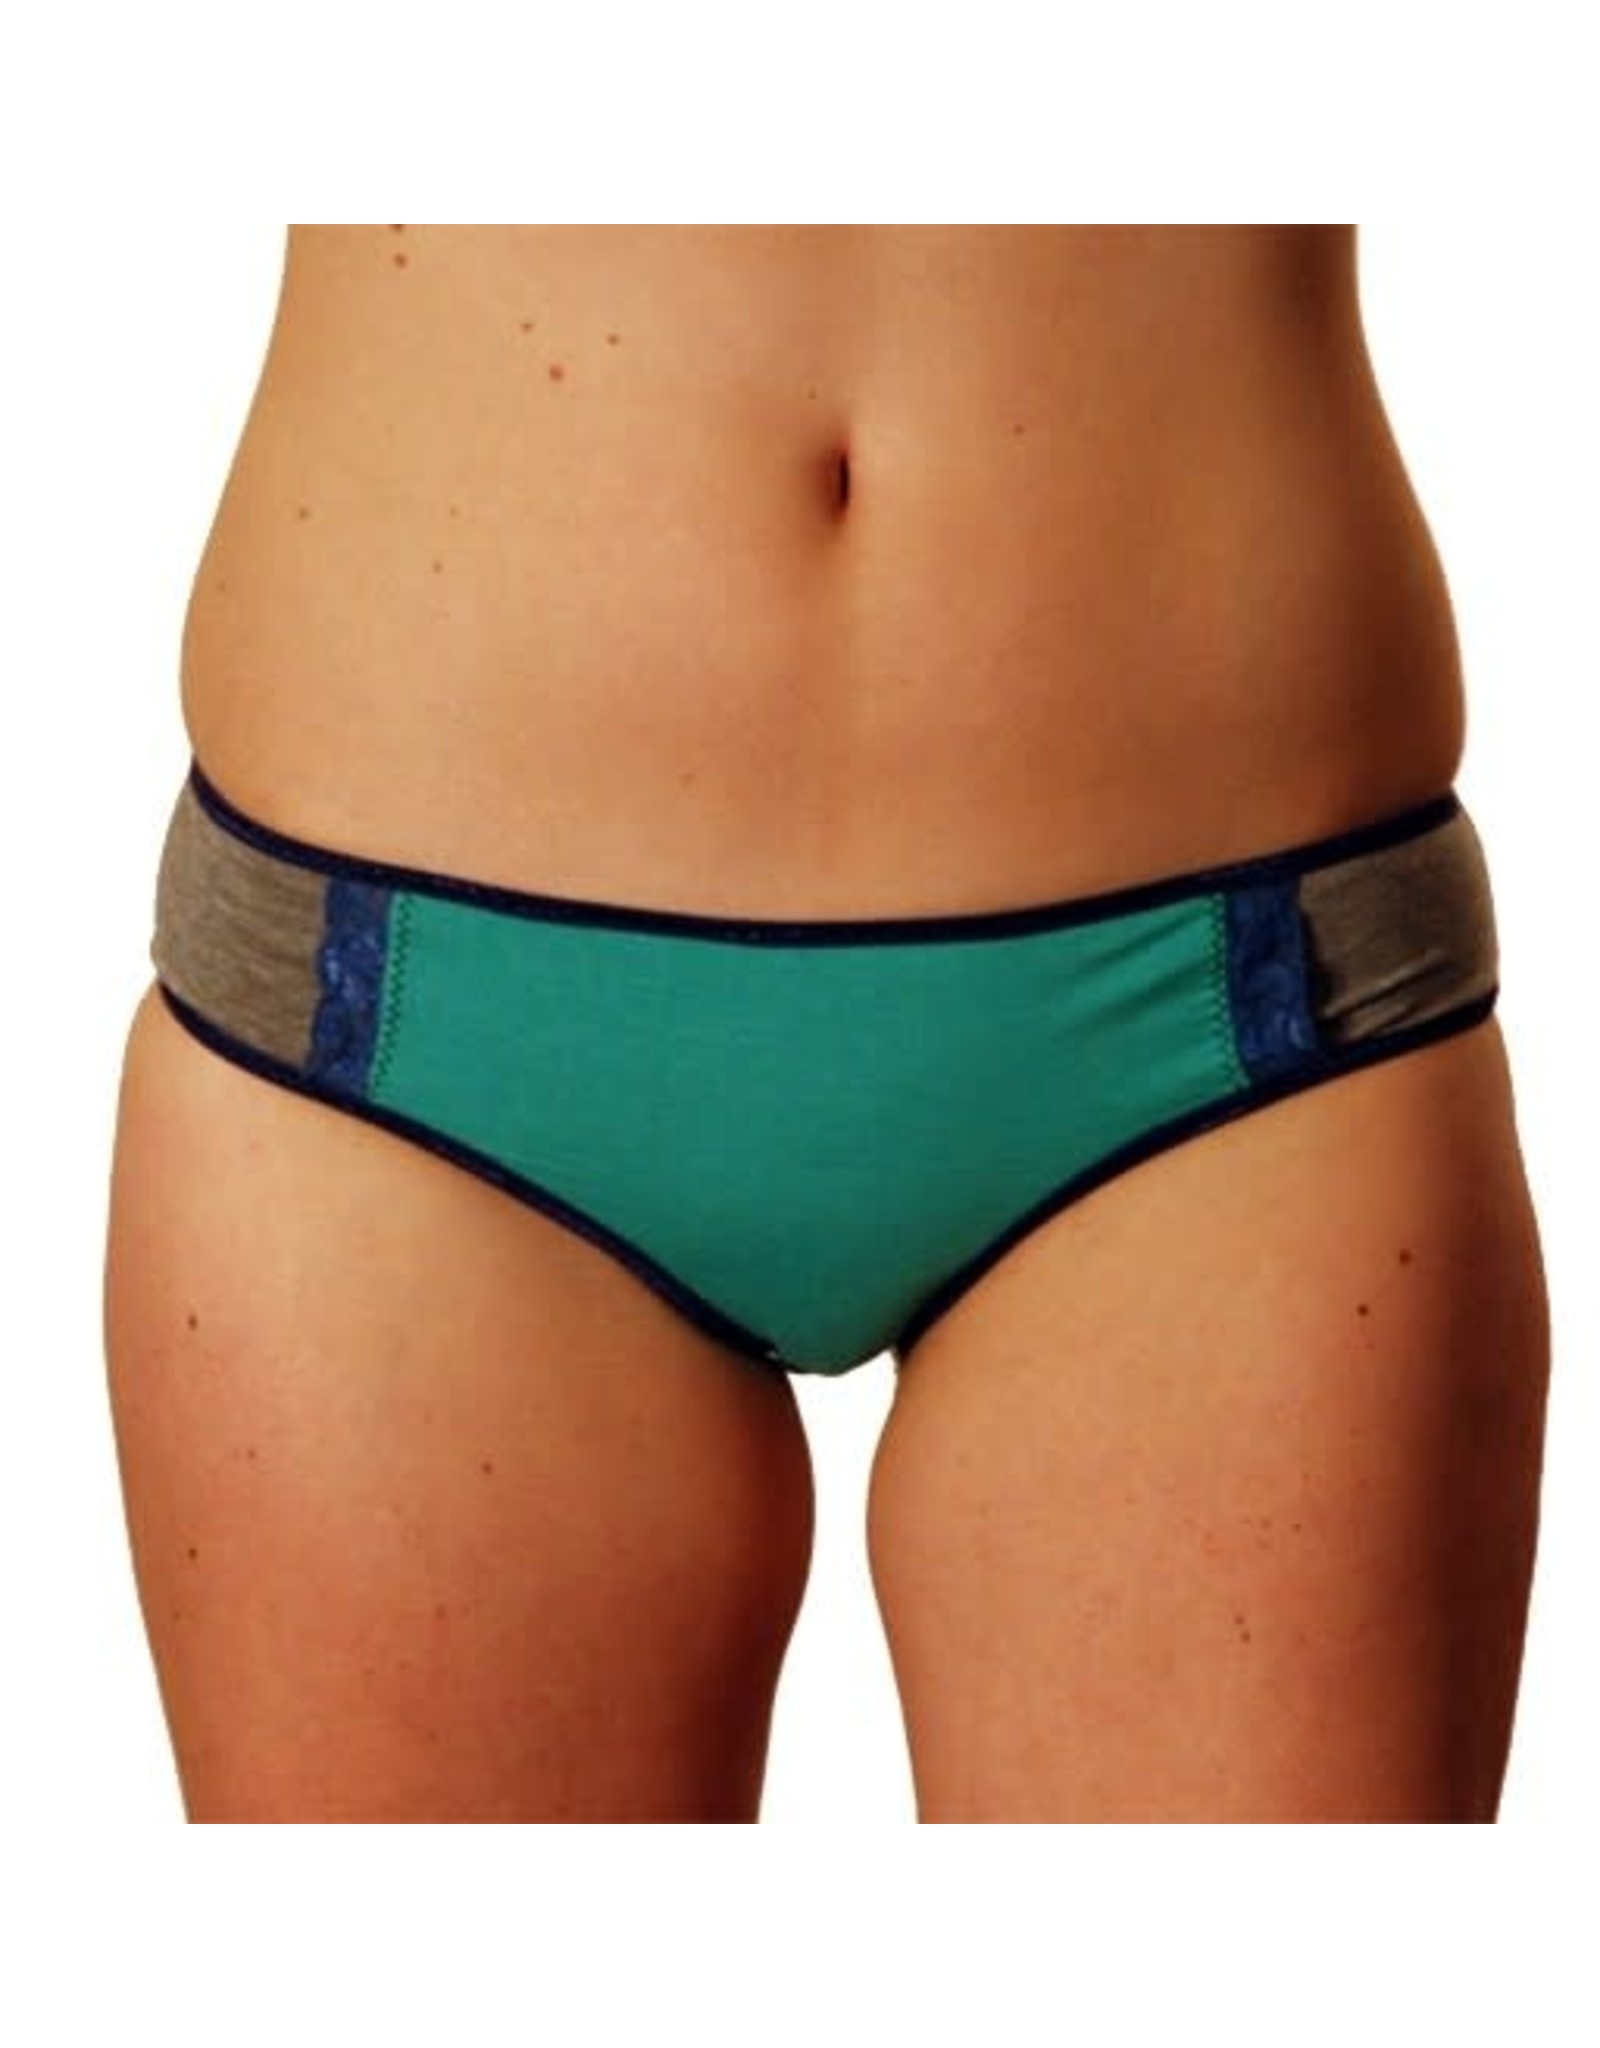 Devil May Wear Eco Briefs. Low Rise Underwear. Assorted Bamboo Blend fibres. Assorted Colours.